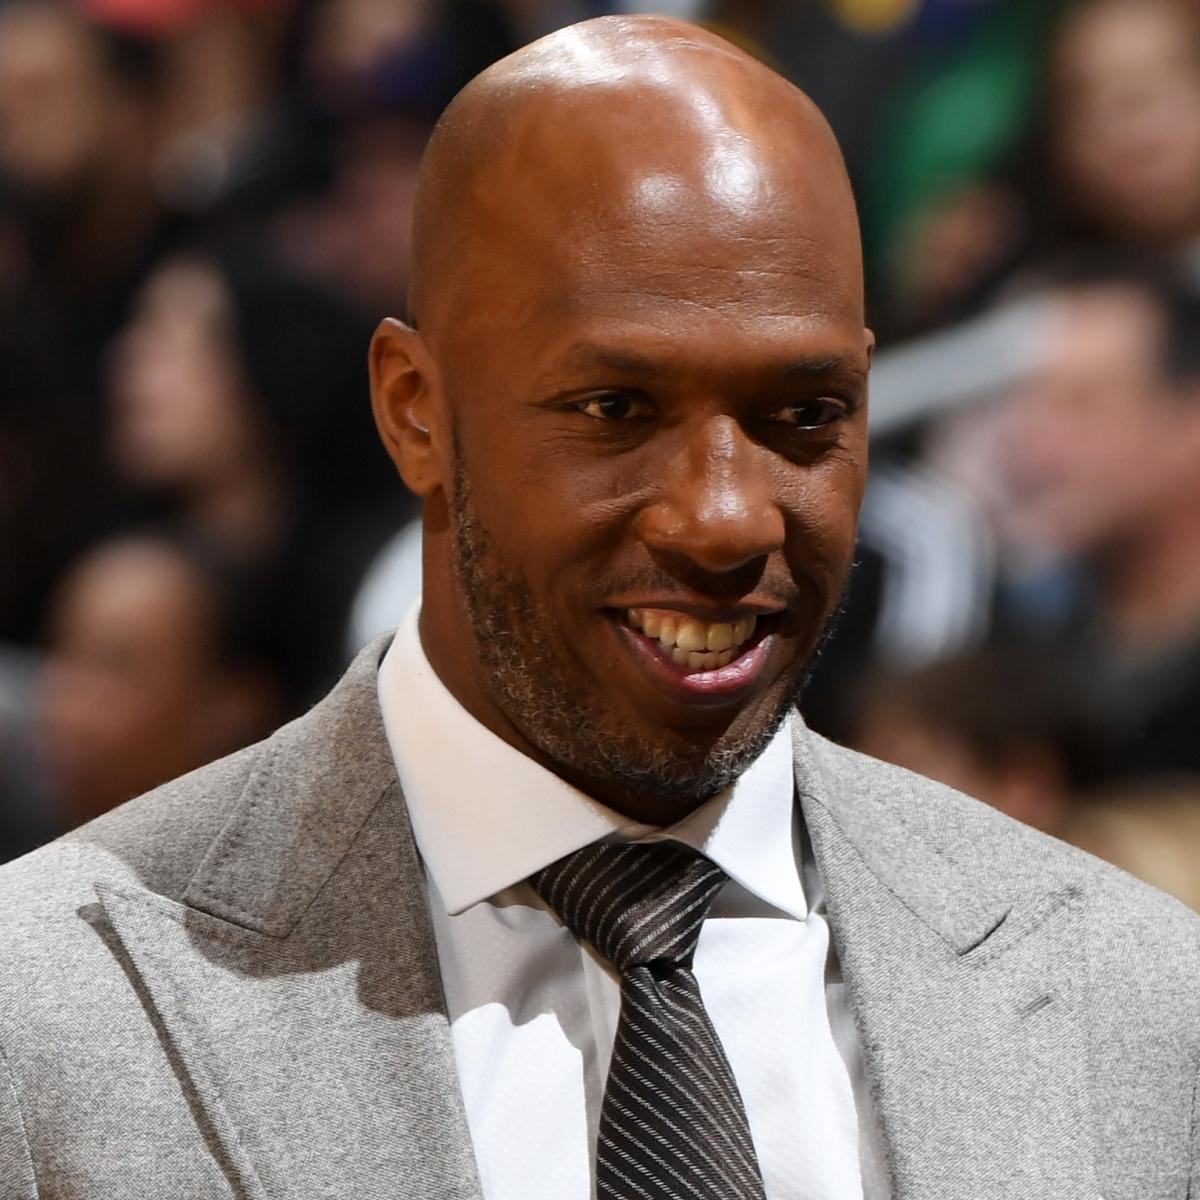 The Top Candidate to Fill Every NBA Head Coaching Vacancy